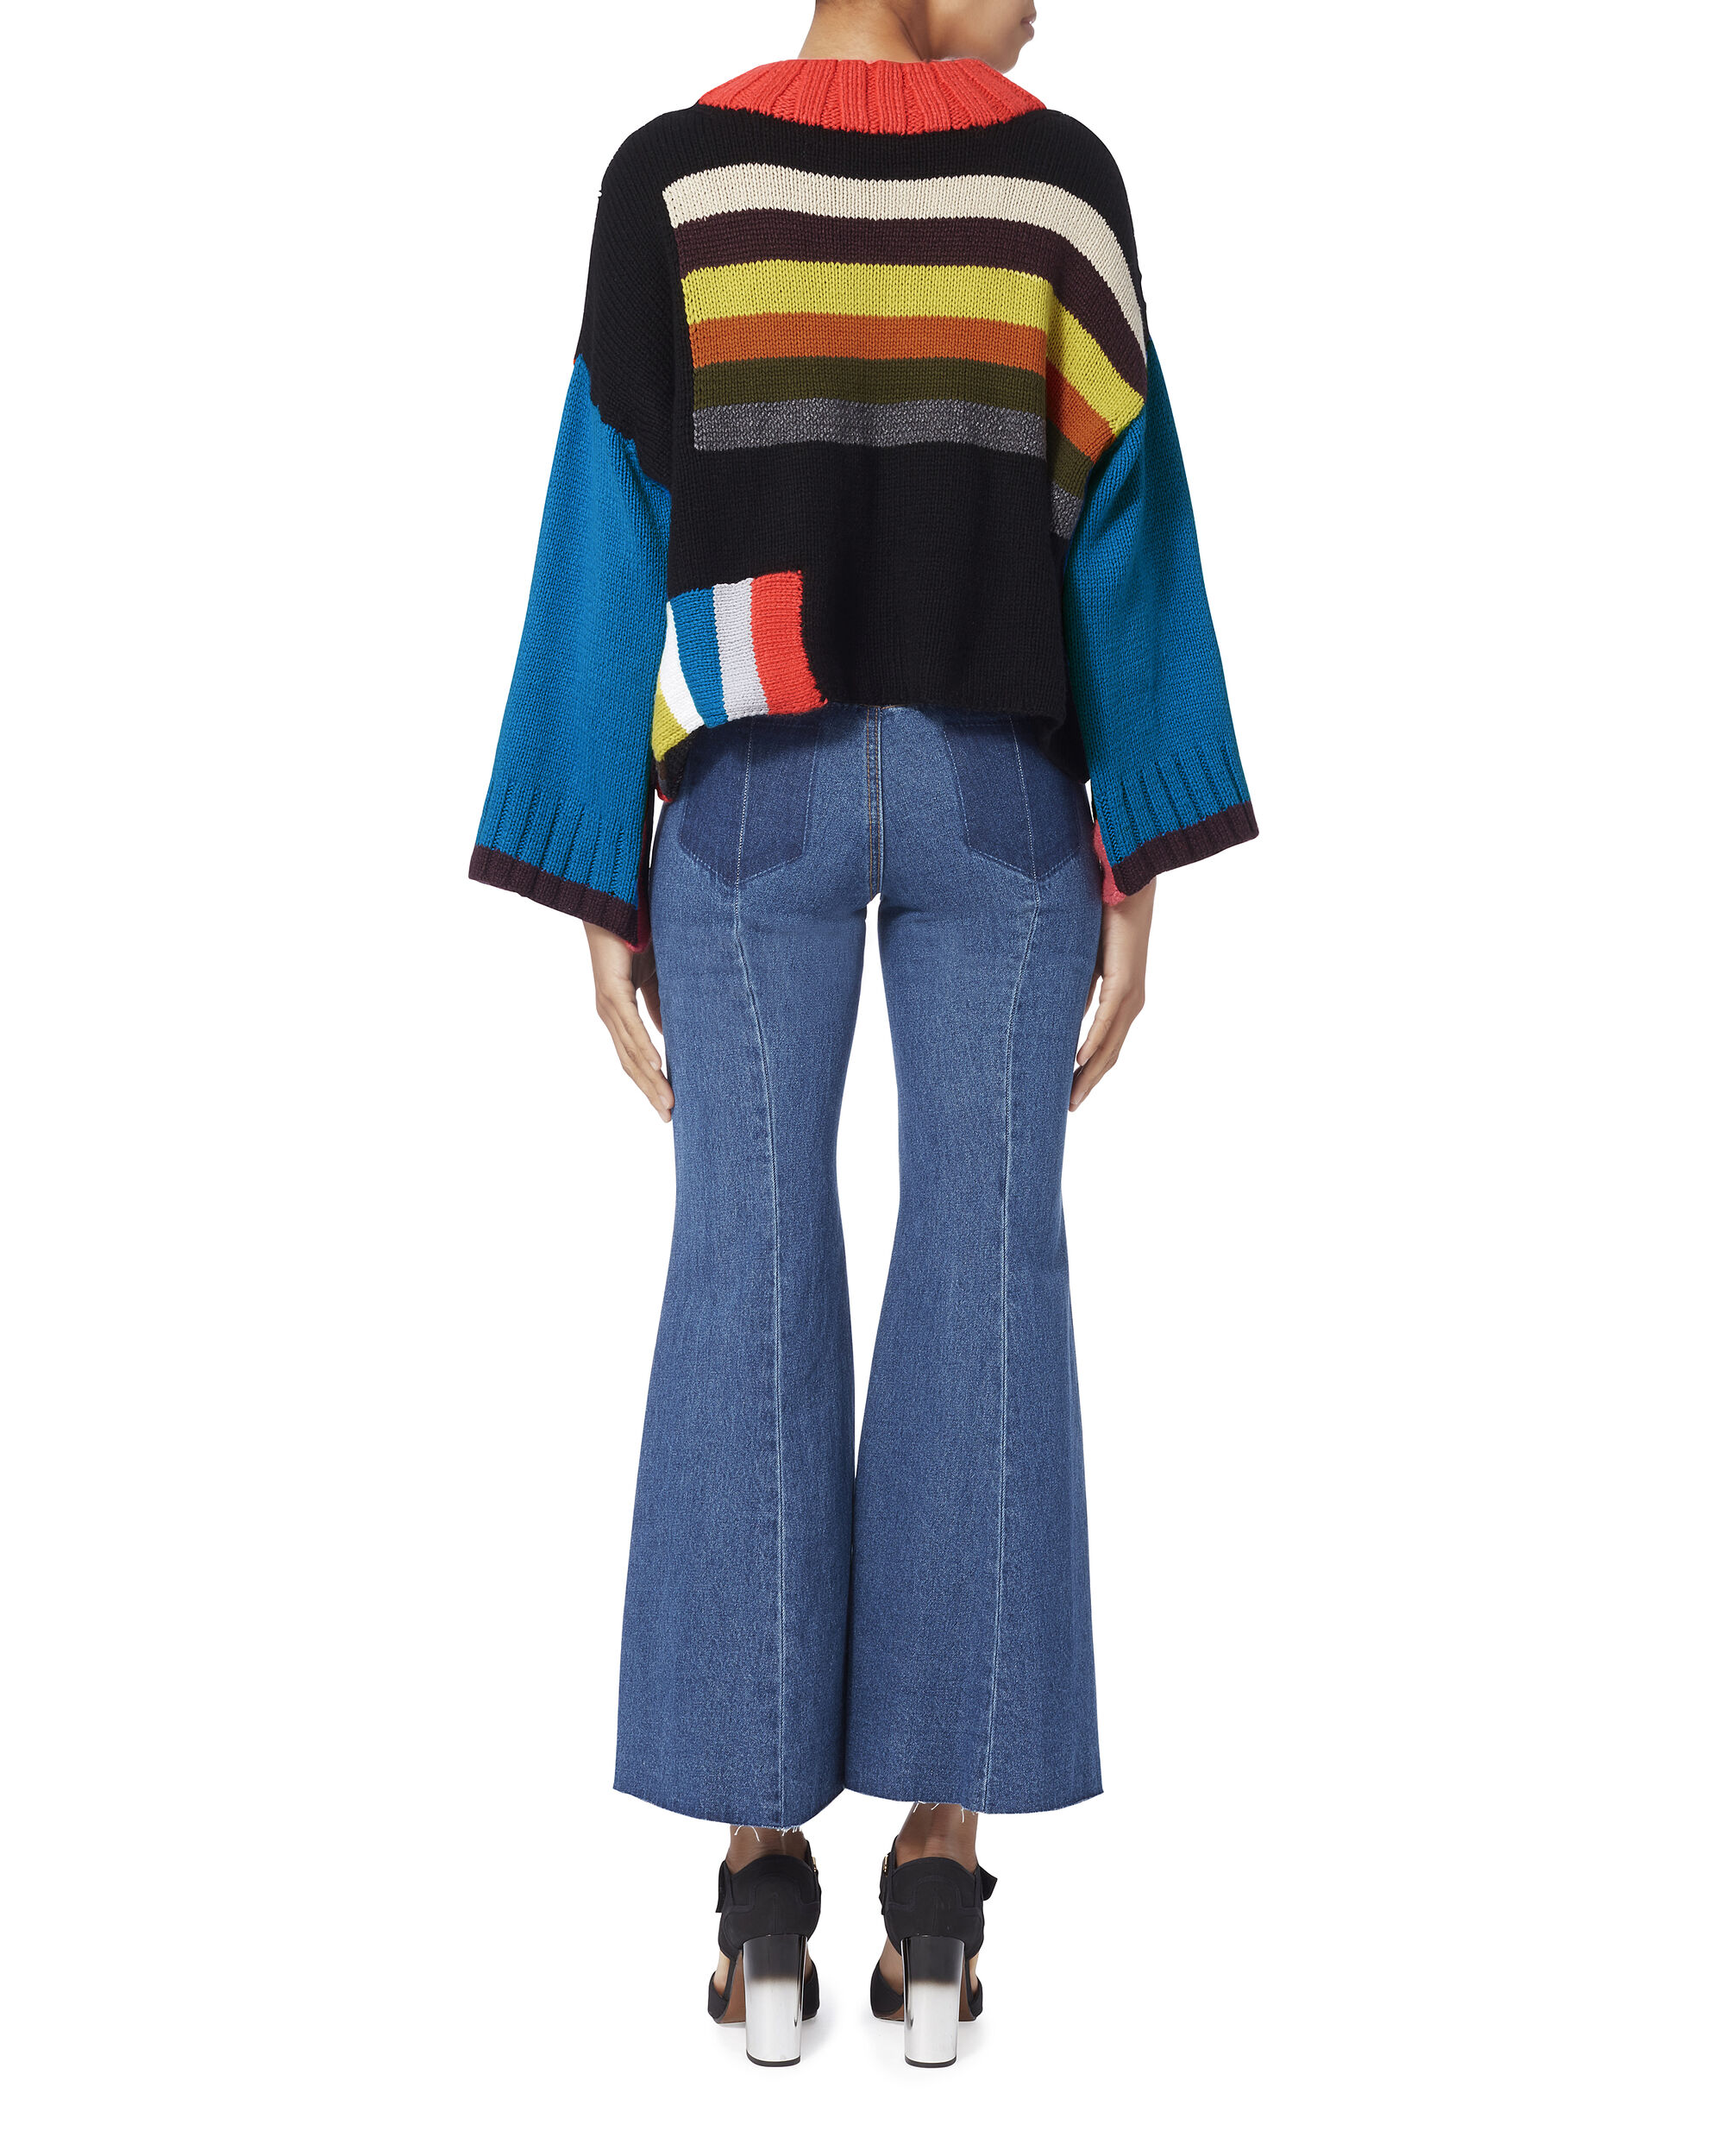 Rio Grande Striped Sweater, MULTI, hi-res